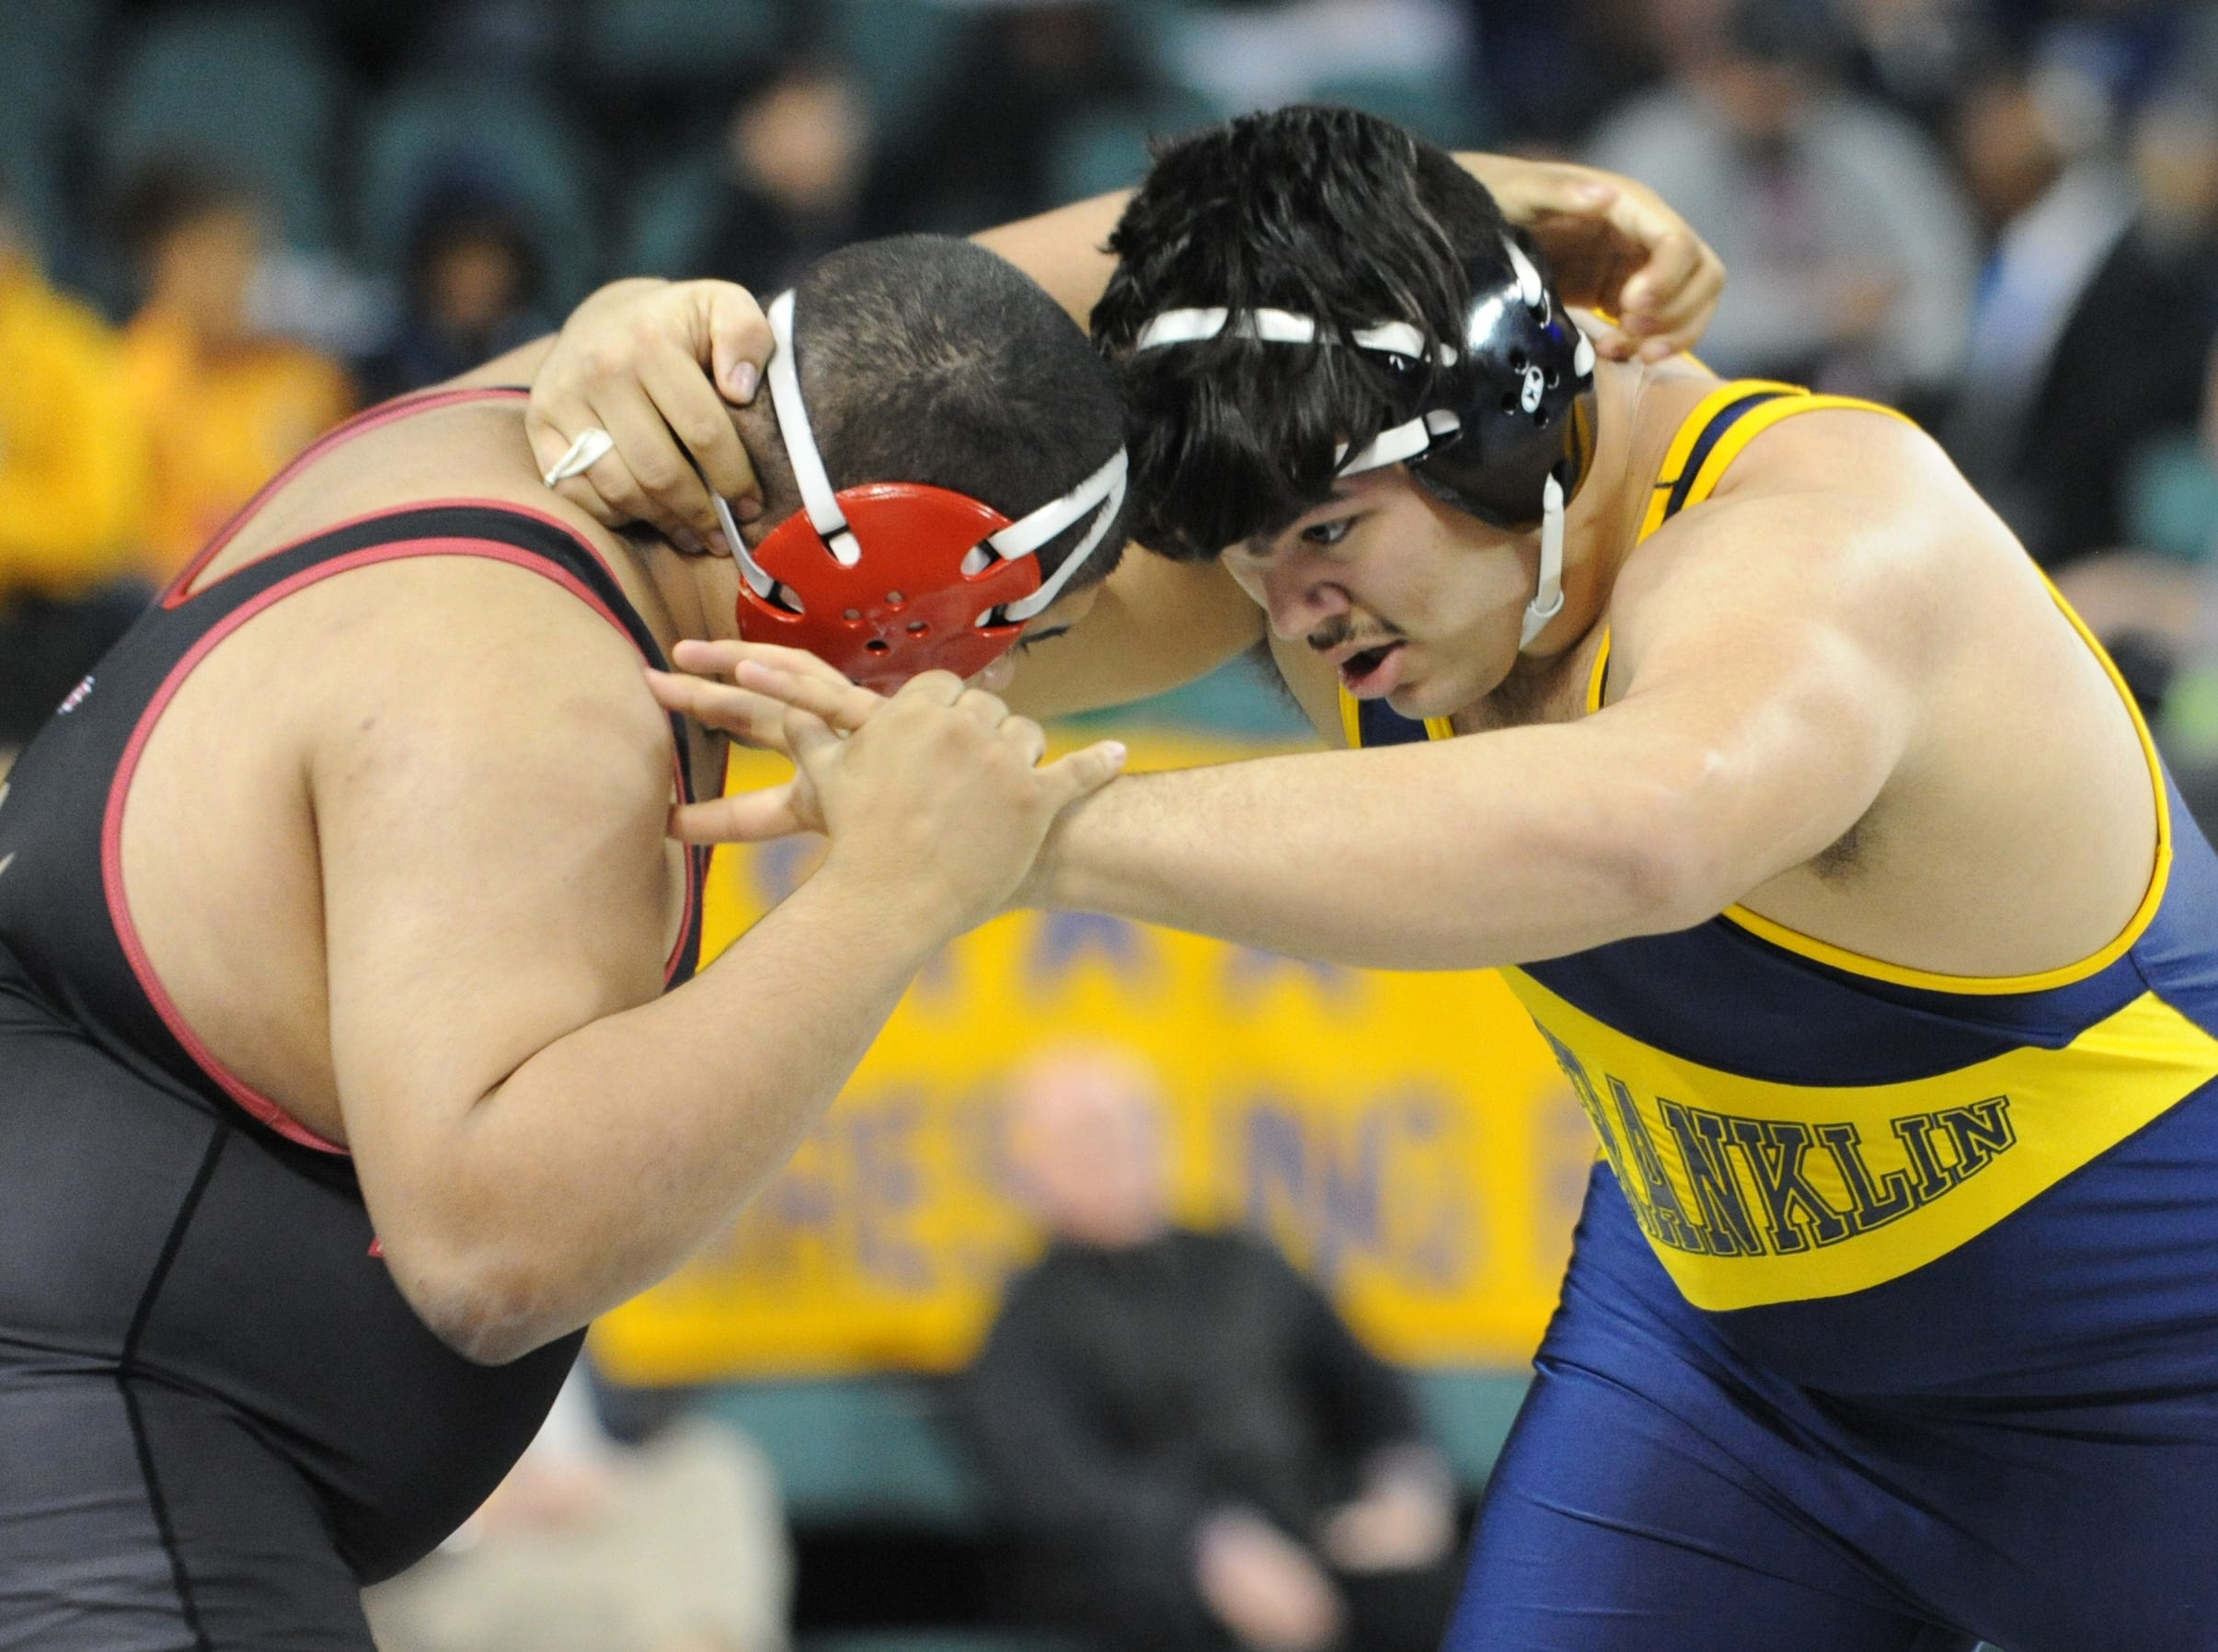 Franklin's Marcus Estevez wrestles Mt. Olive's Jayvon Davidson in a 285-pound 5th place bout during the NJSIAA Individual Wrestling Championships at Boardwalk Hall in Atlantic City, Saturday, March 2, 2019.